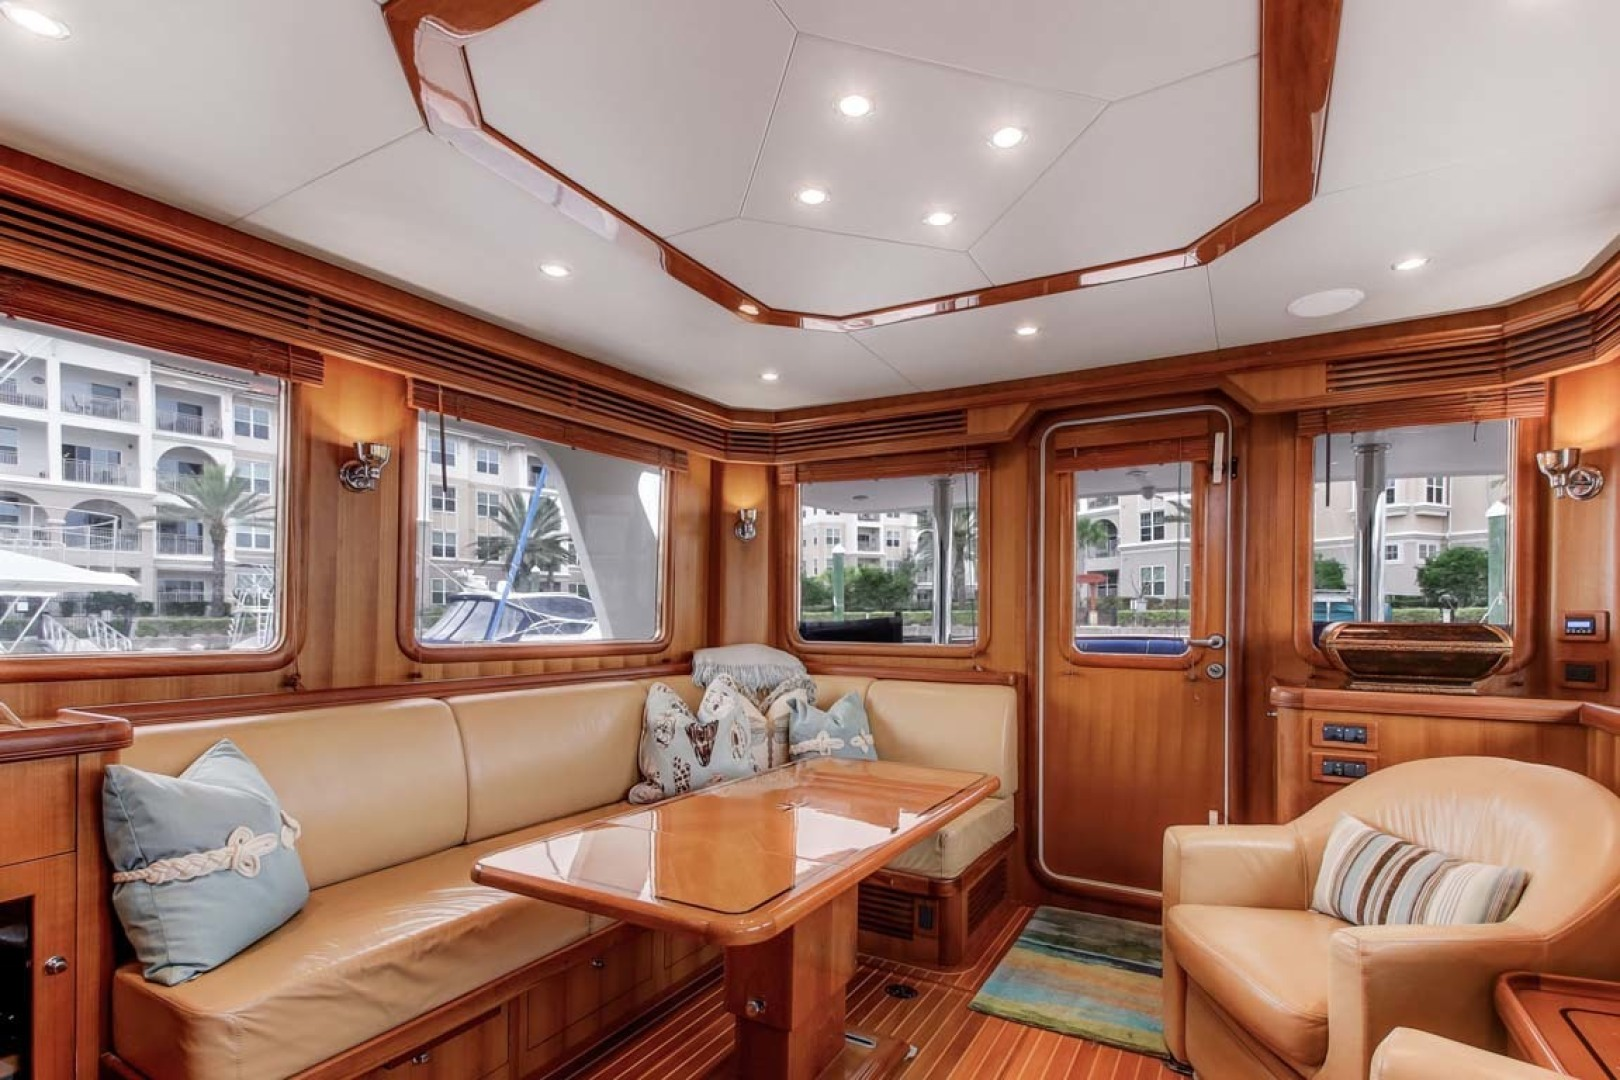 Selene-60 Ocean Trawler 2010-Gypsy Magic Jacksonville-Florida-United States-Salon-1346733 | Thumbnail